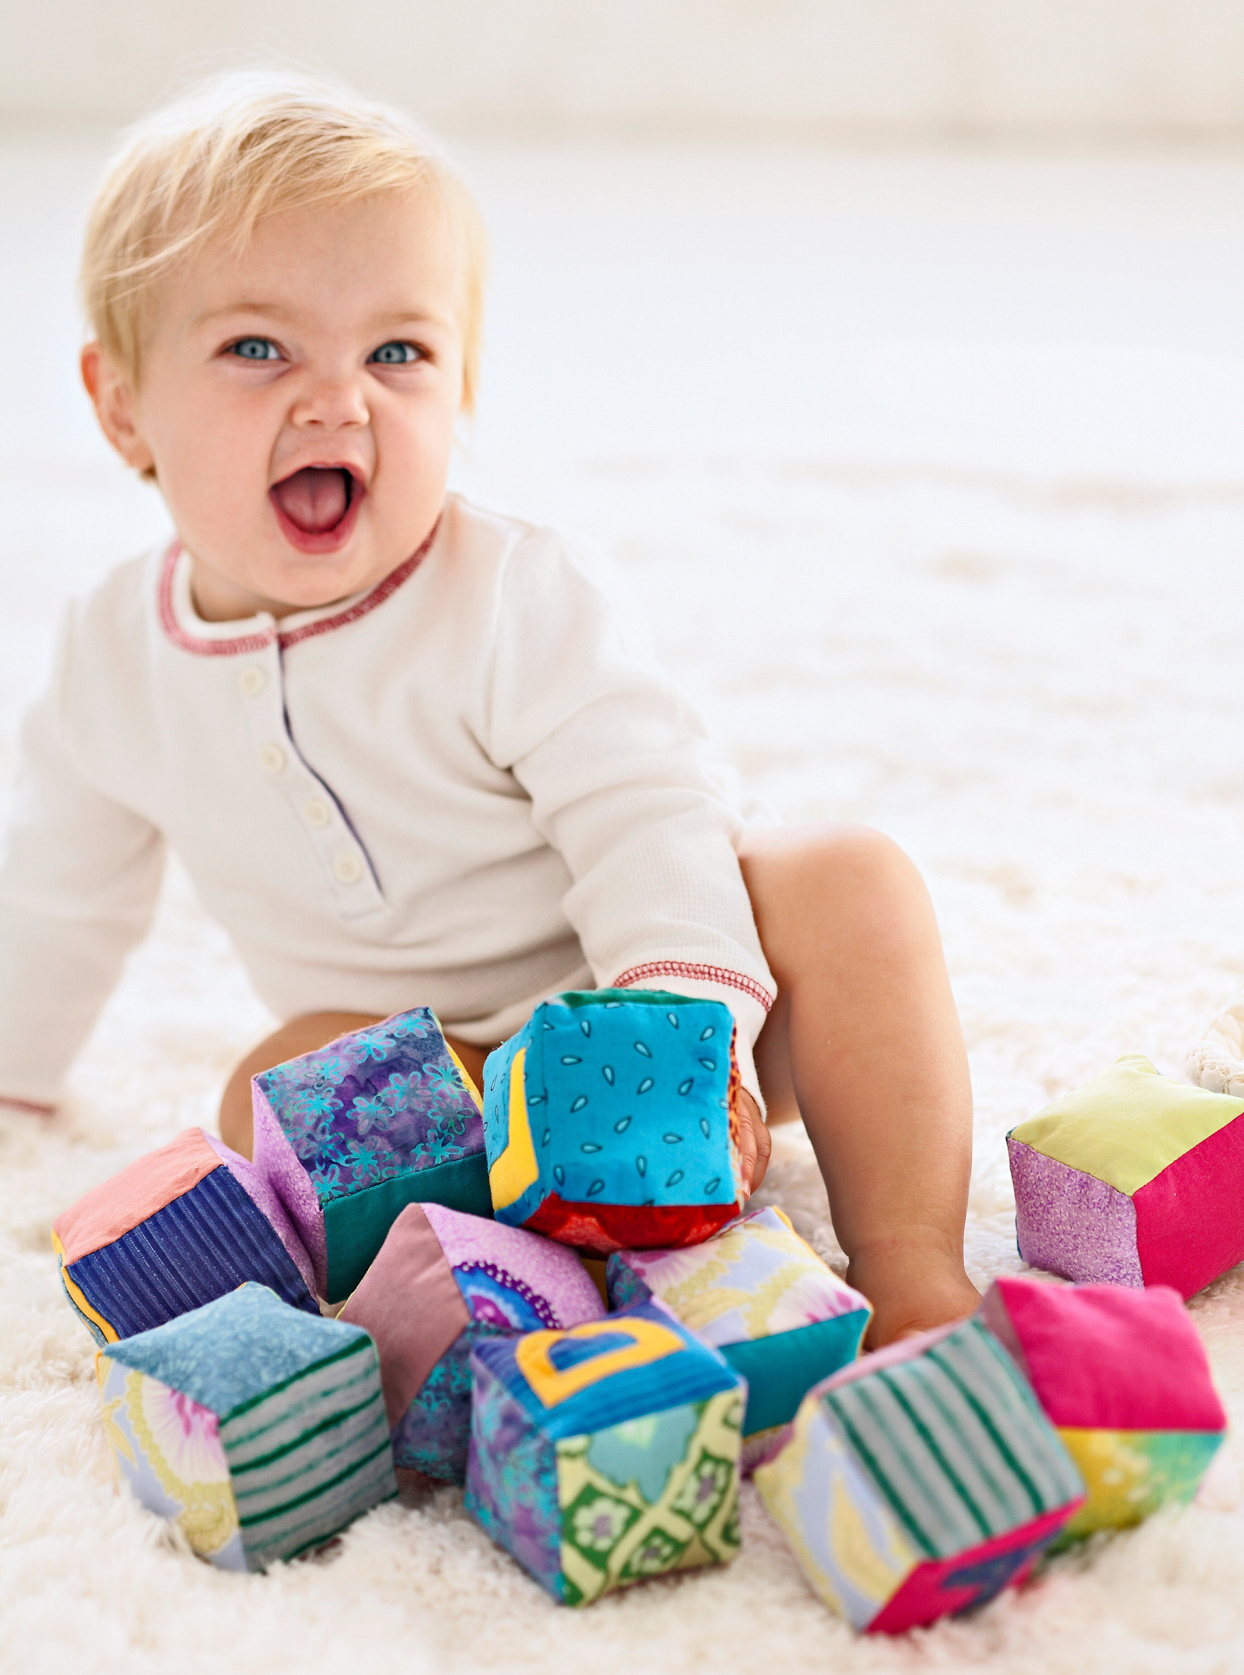 happy baby with colorful blocks